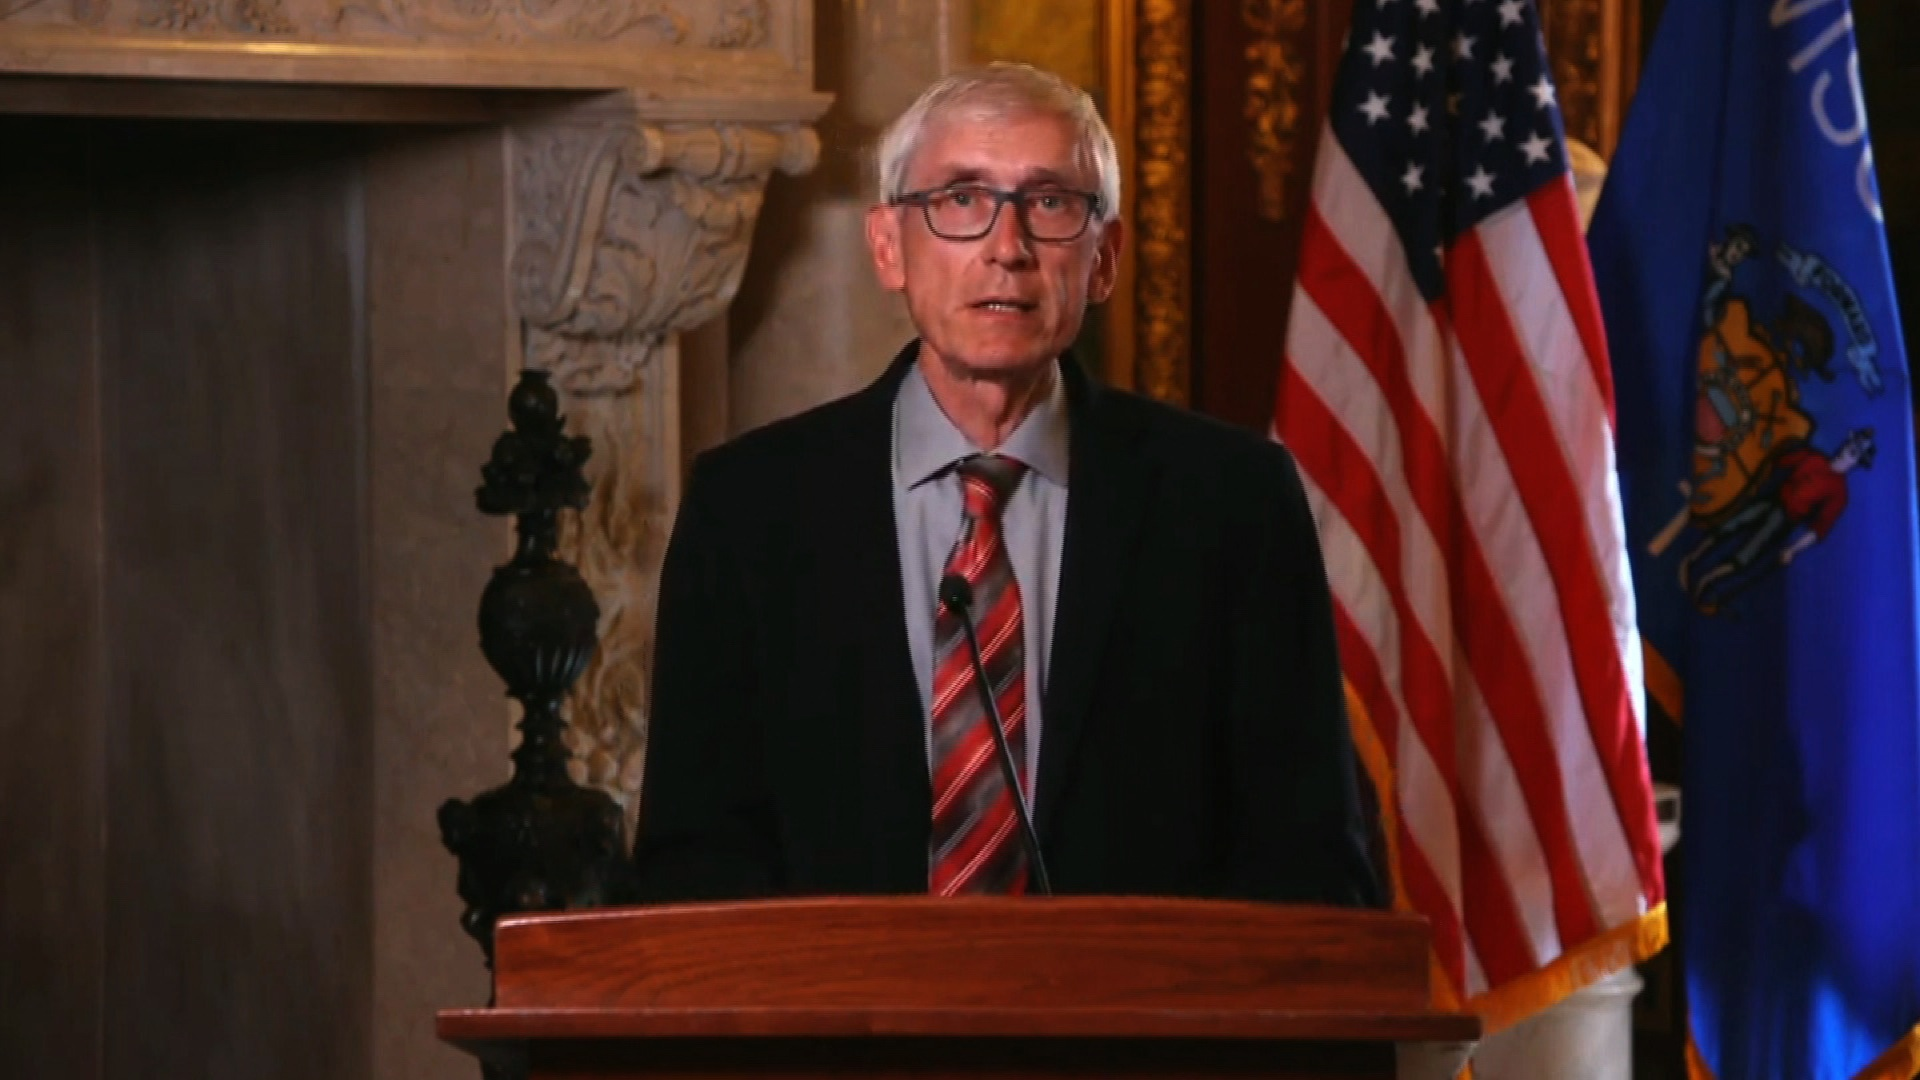 Wisconsin Gov. Tony Evers delivers a statement in Madison, Wisconsin, on August 24.